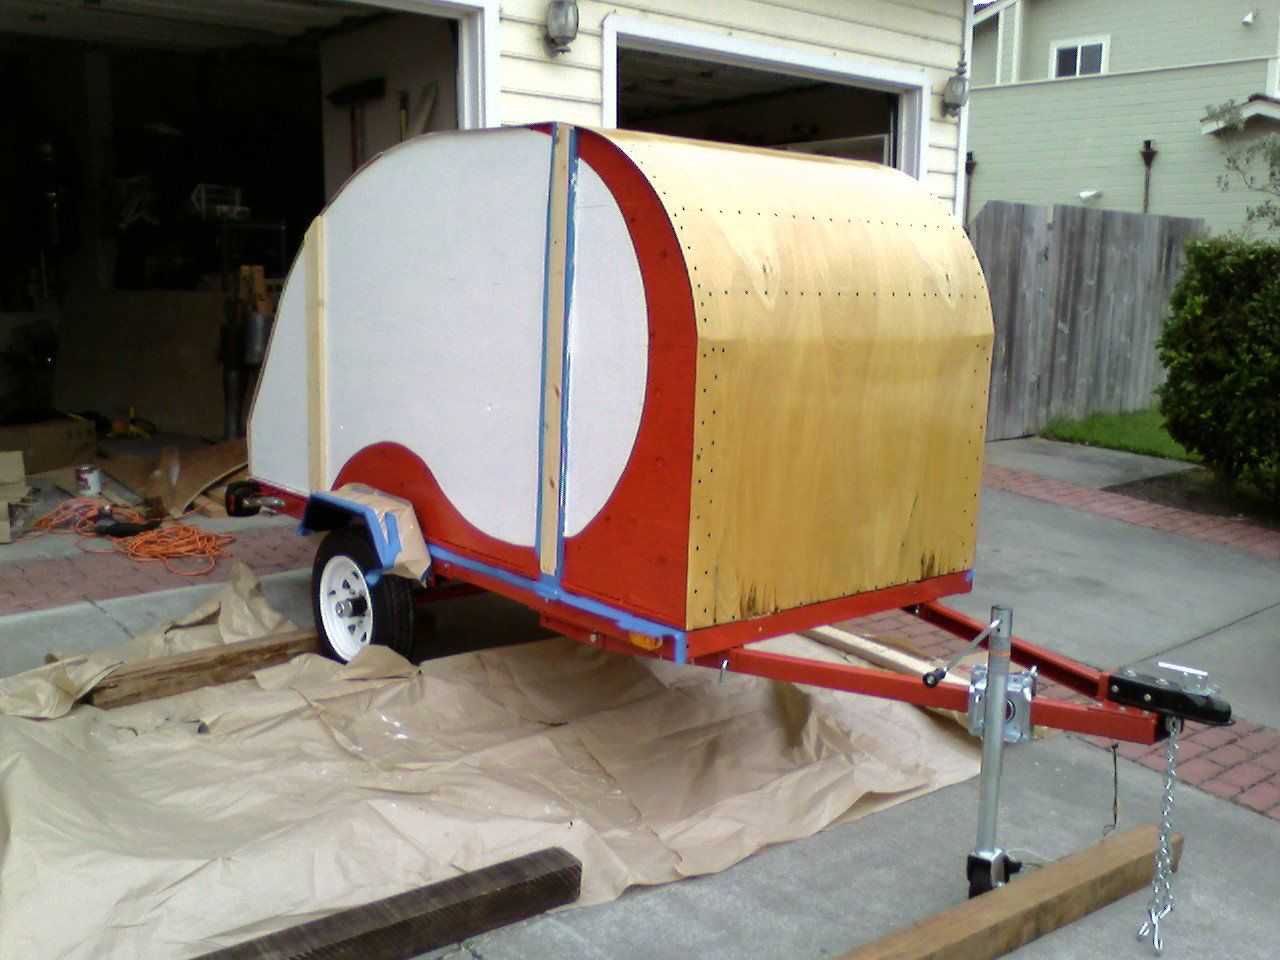 Build Your Own RV With Kits & Plans For Teardrop Trailers